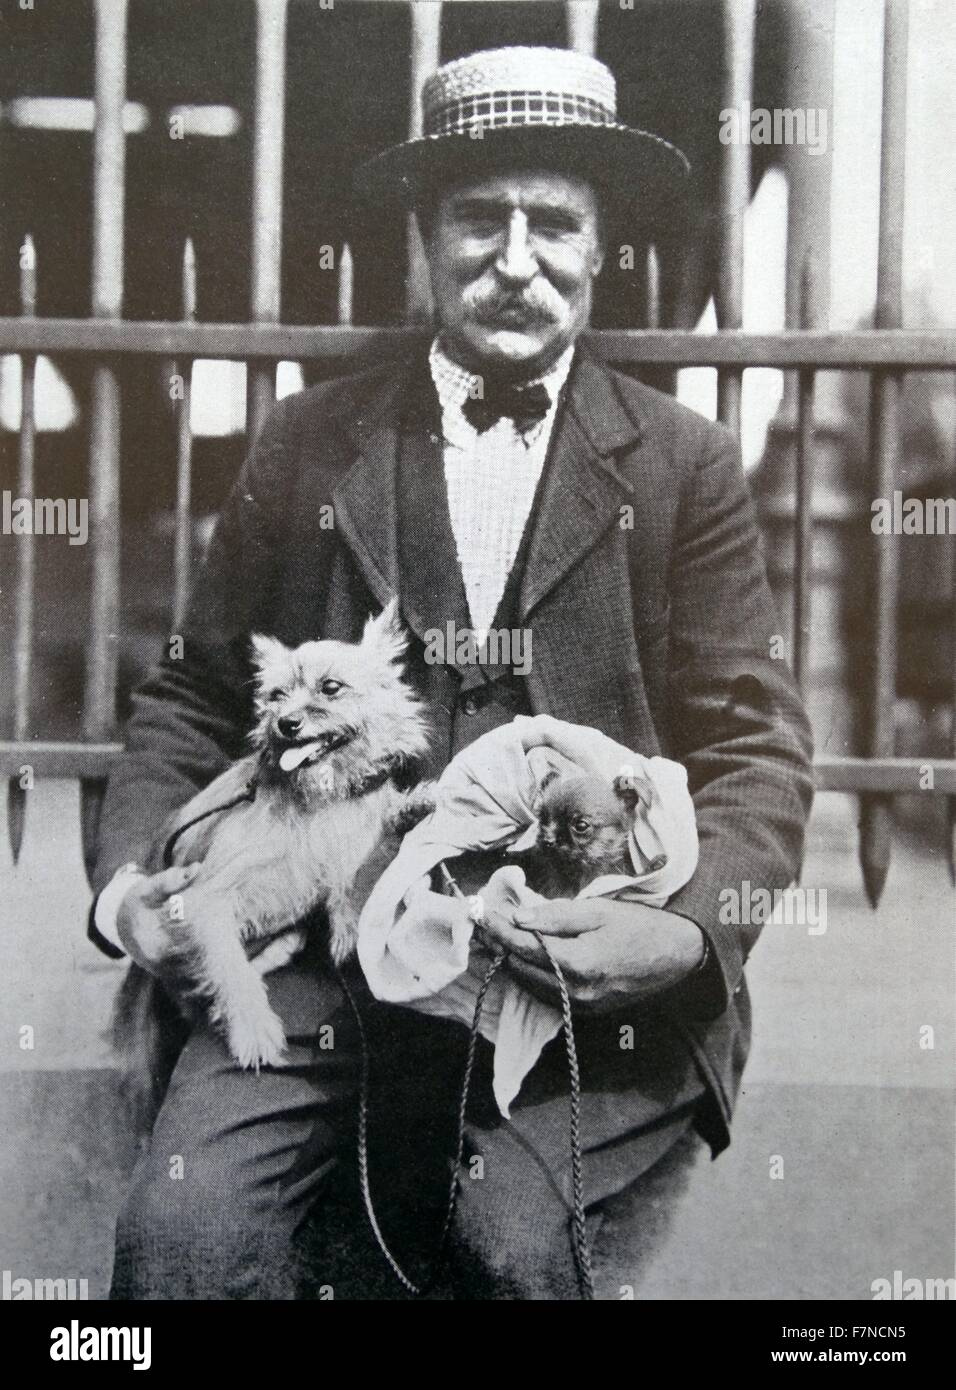 man with a dogs, Belgium 1910 - Stock Image